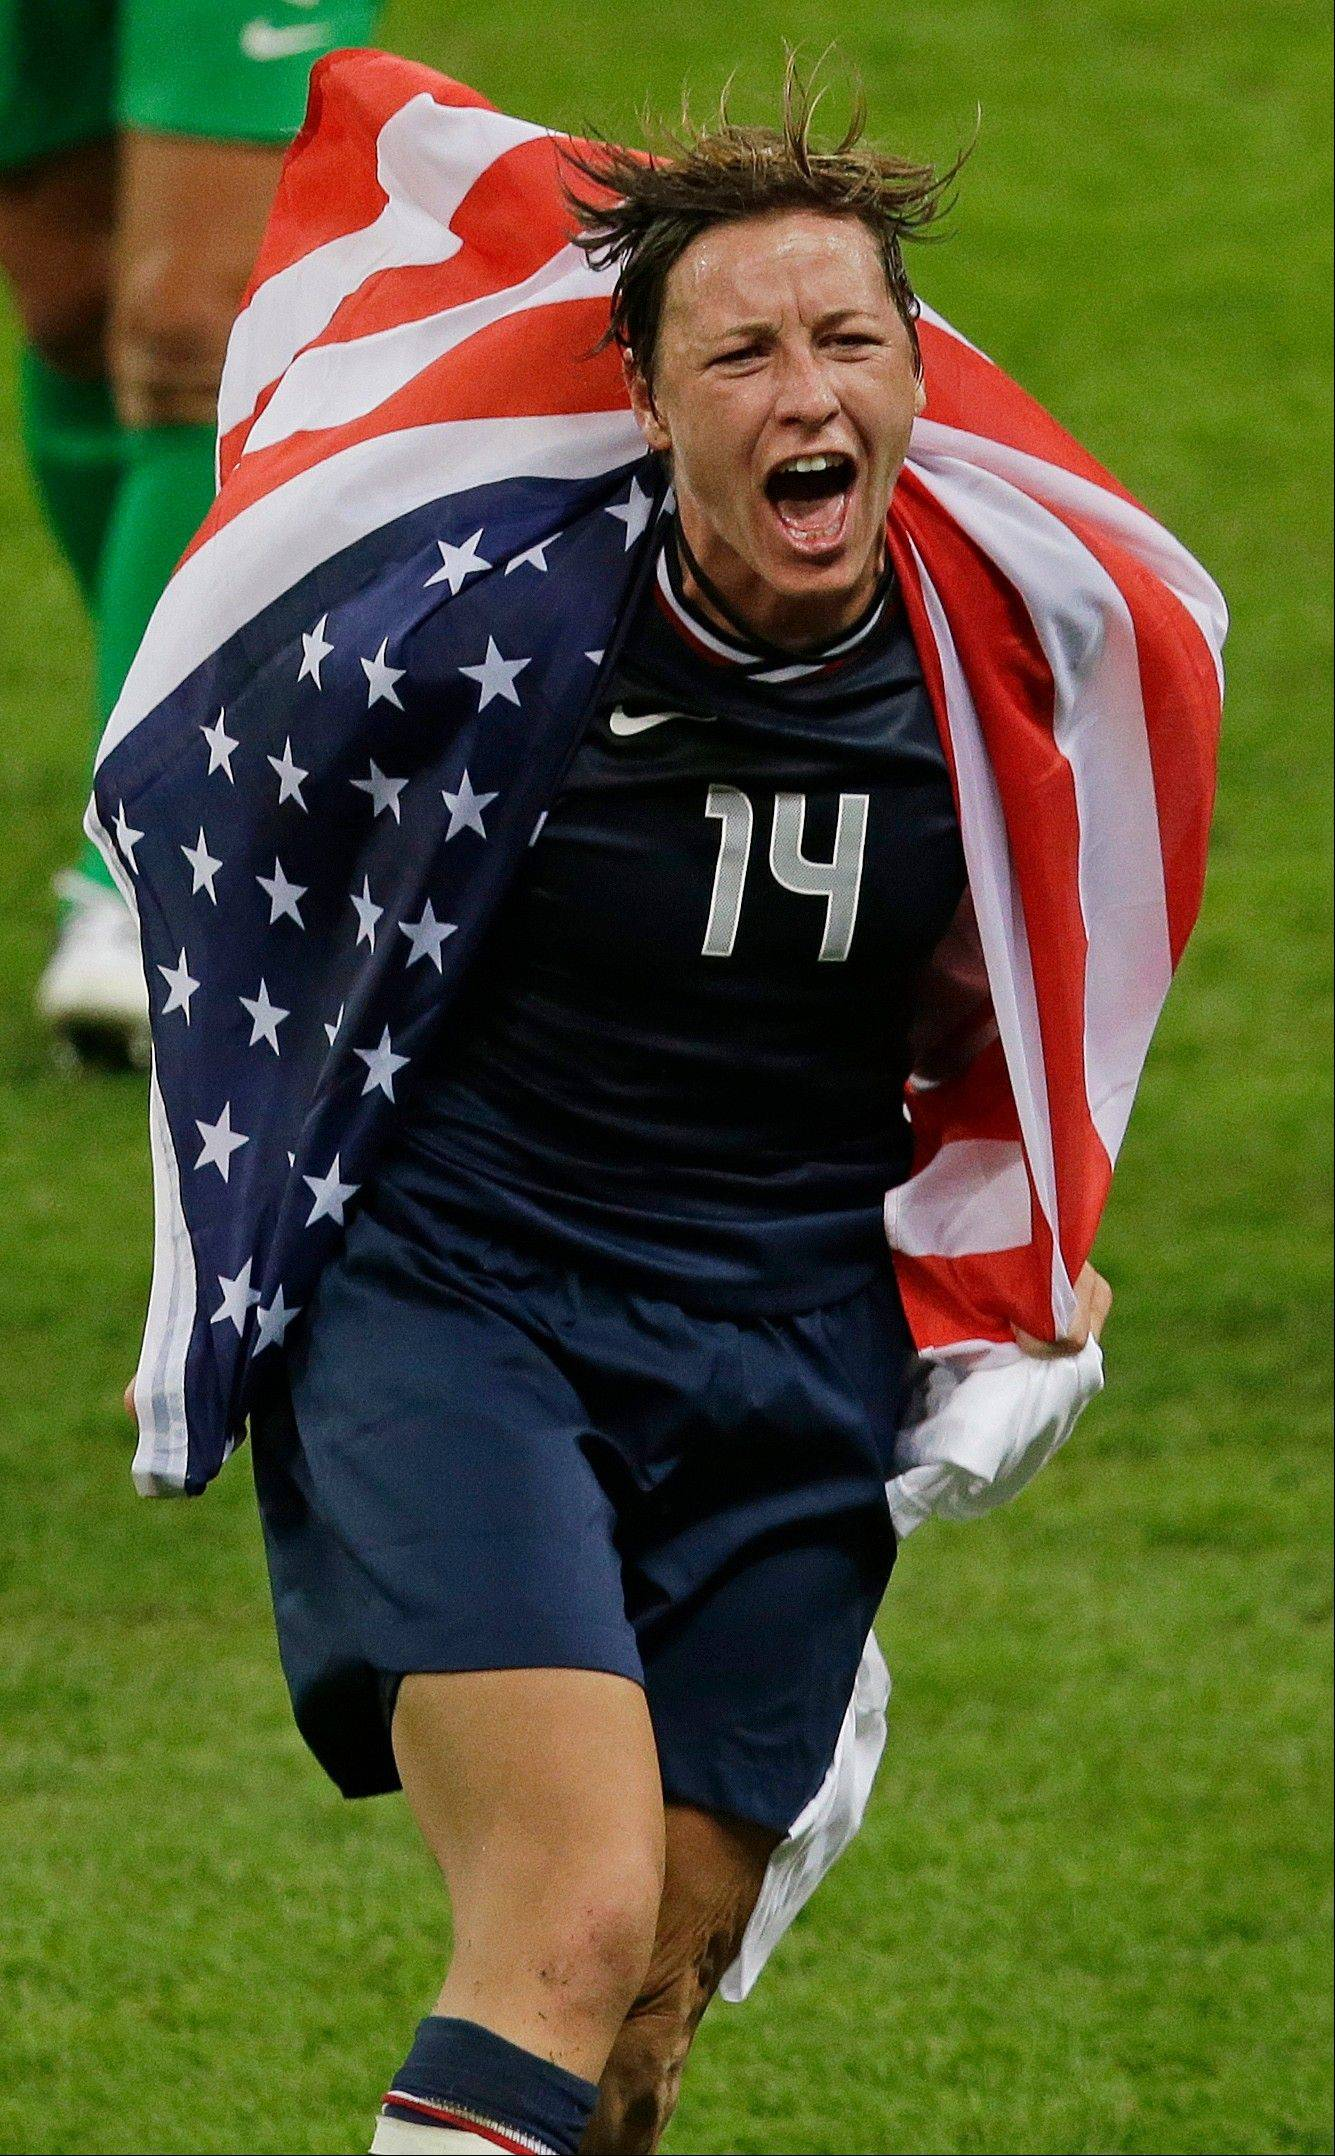 Abby Wambach celebrates after winning the women�s soccer gold medal match against Japan at the 2012 Summer Olympics in London